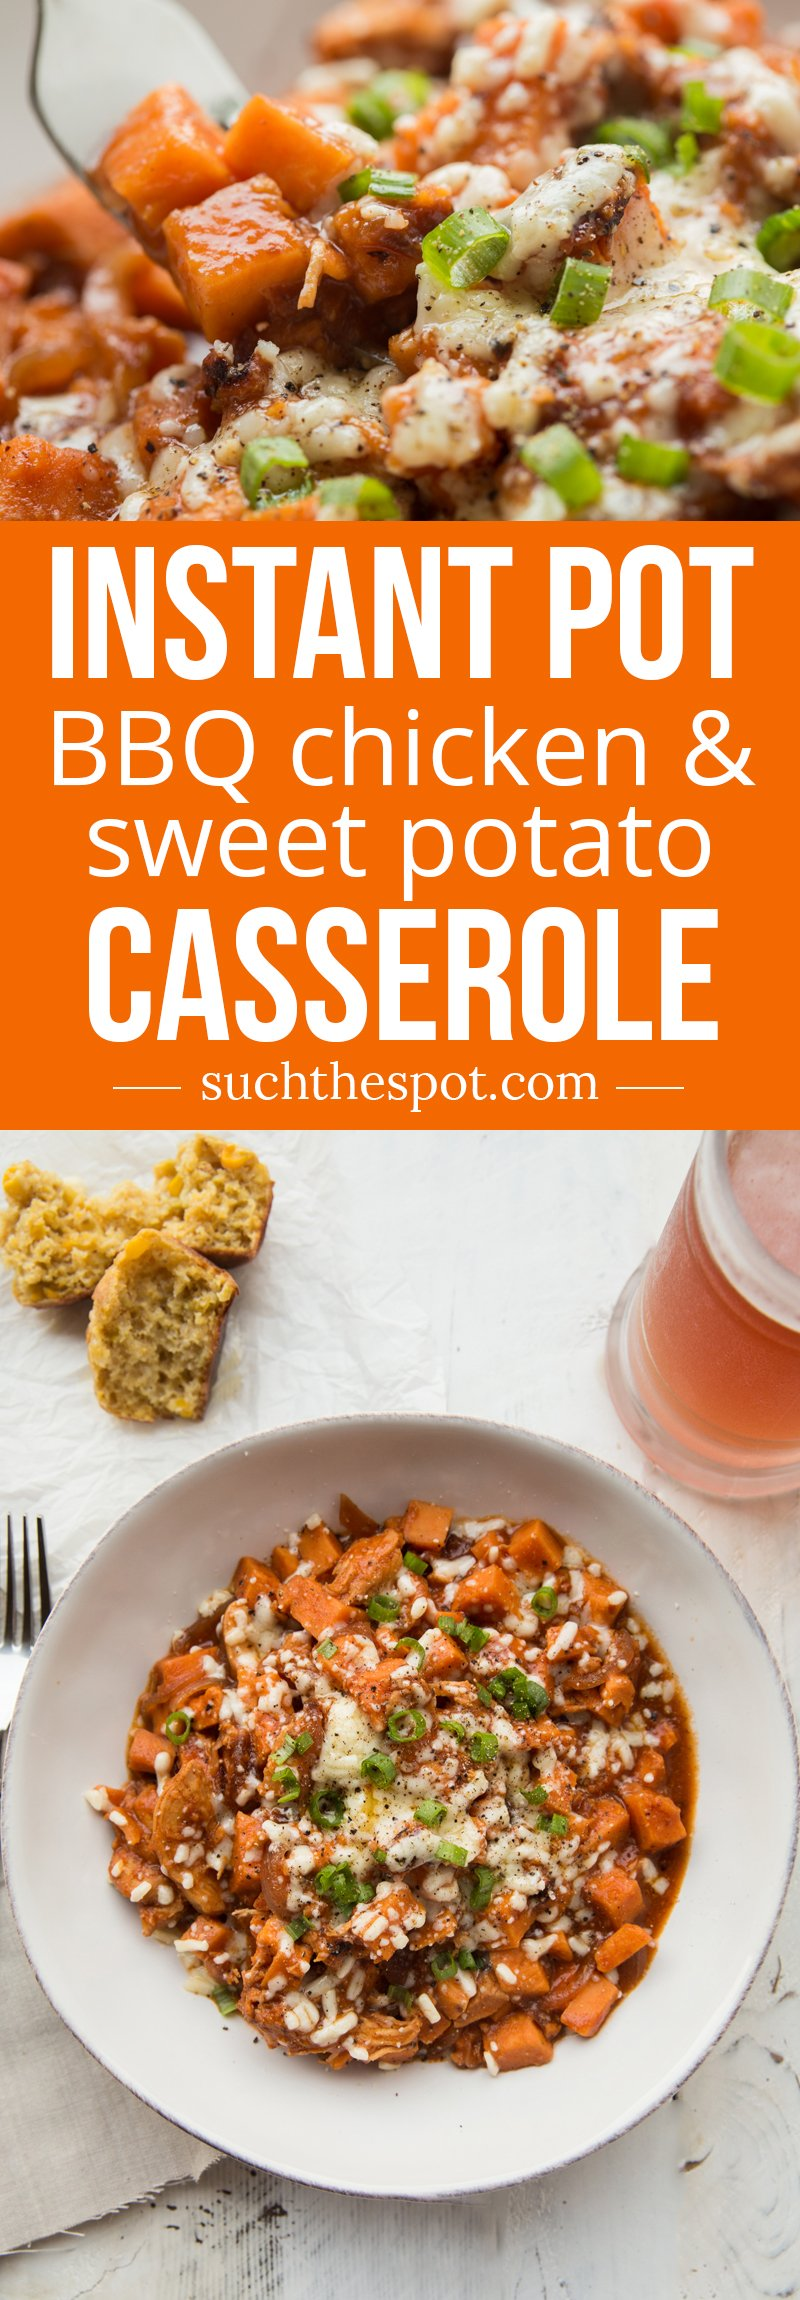 Stuffed sweet potatoes get a makeover in this comfort food casserole made with tangy bbq chicken, loads of cheese and sweet potatoes. It's one of our go-to quick meals for busy weeknights.